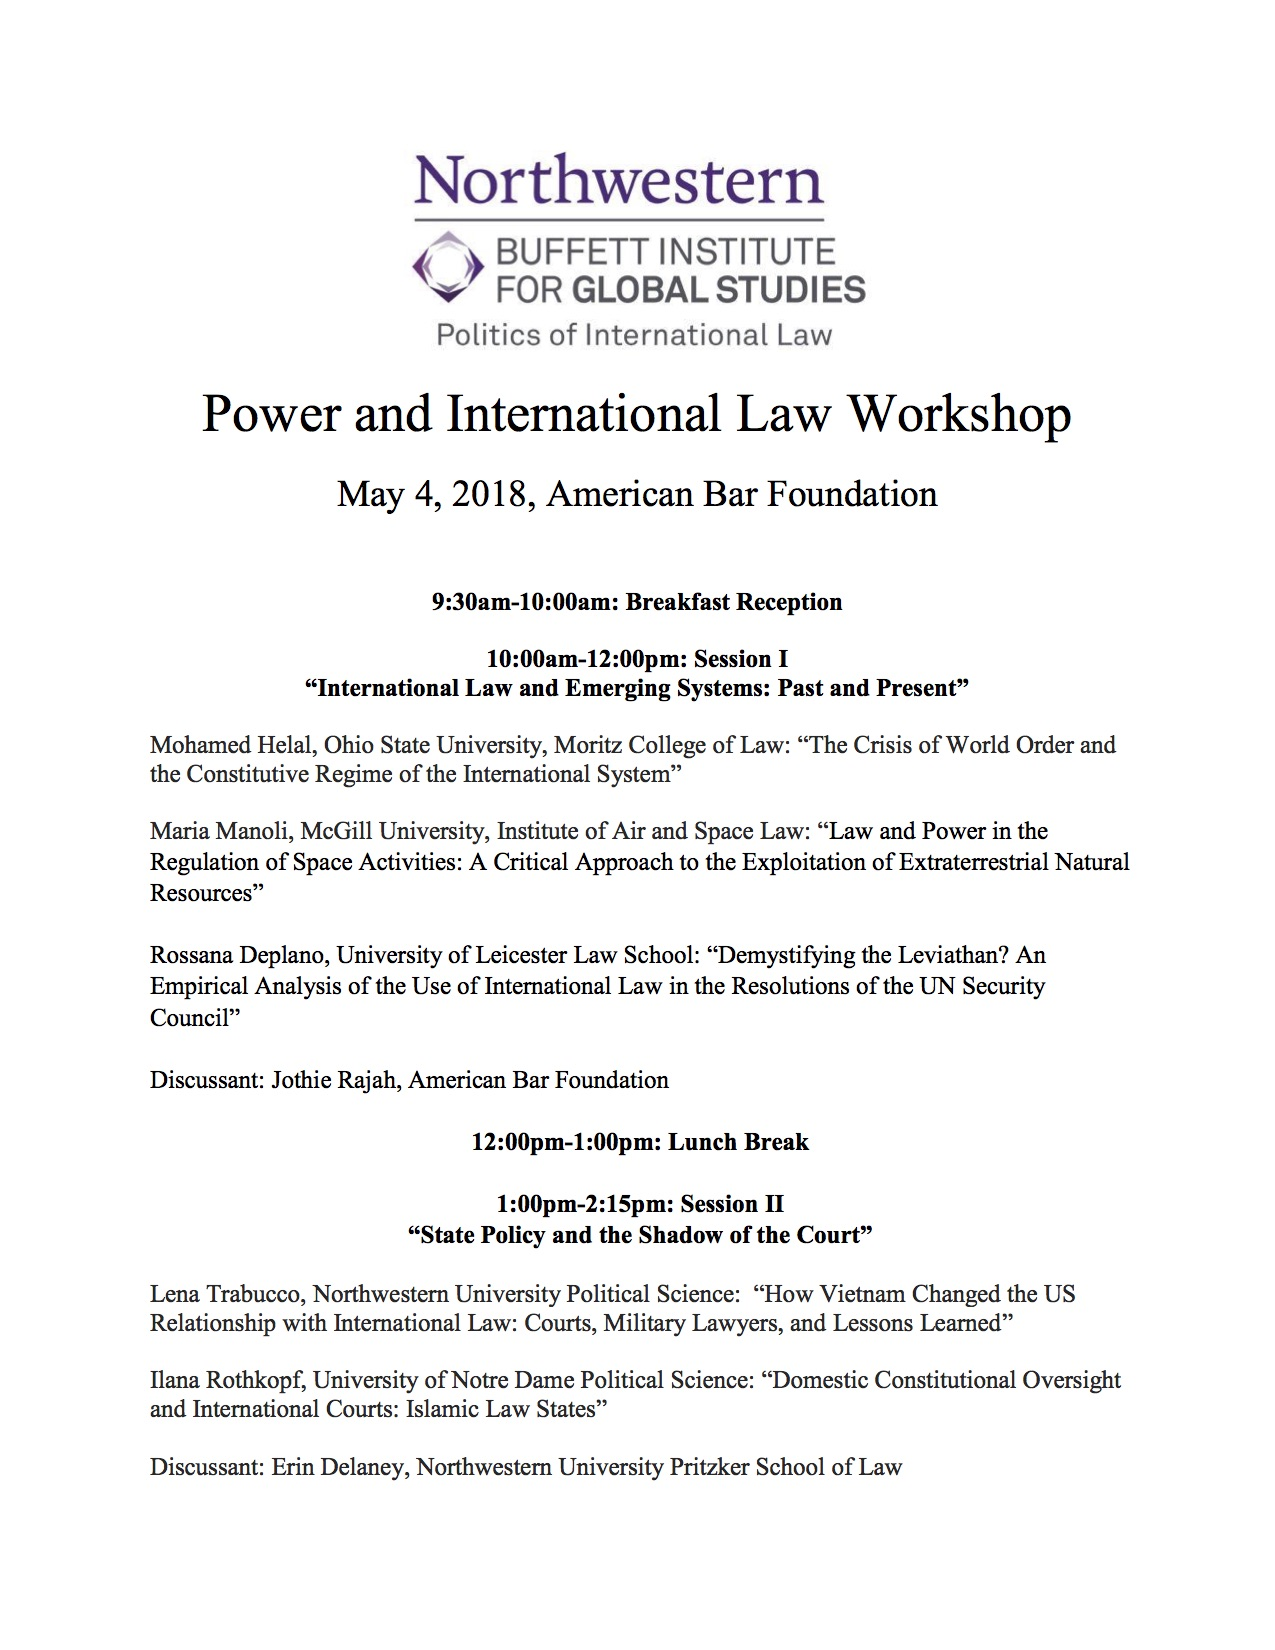 Power and International Law Program.jpg